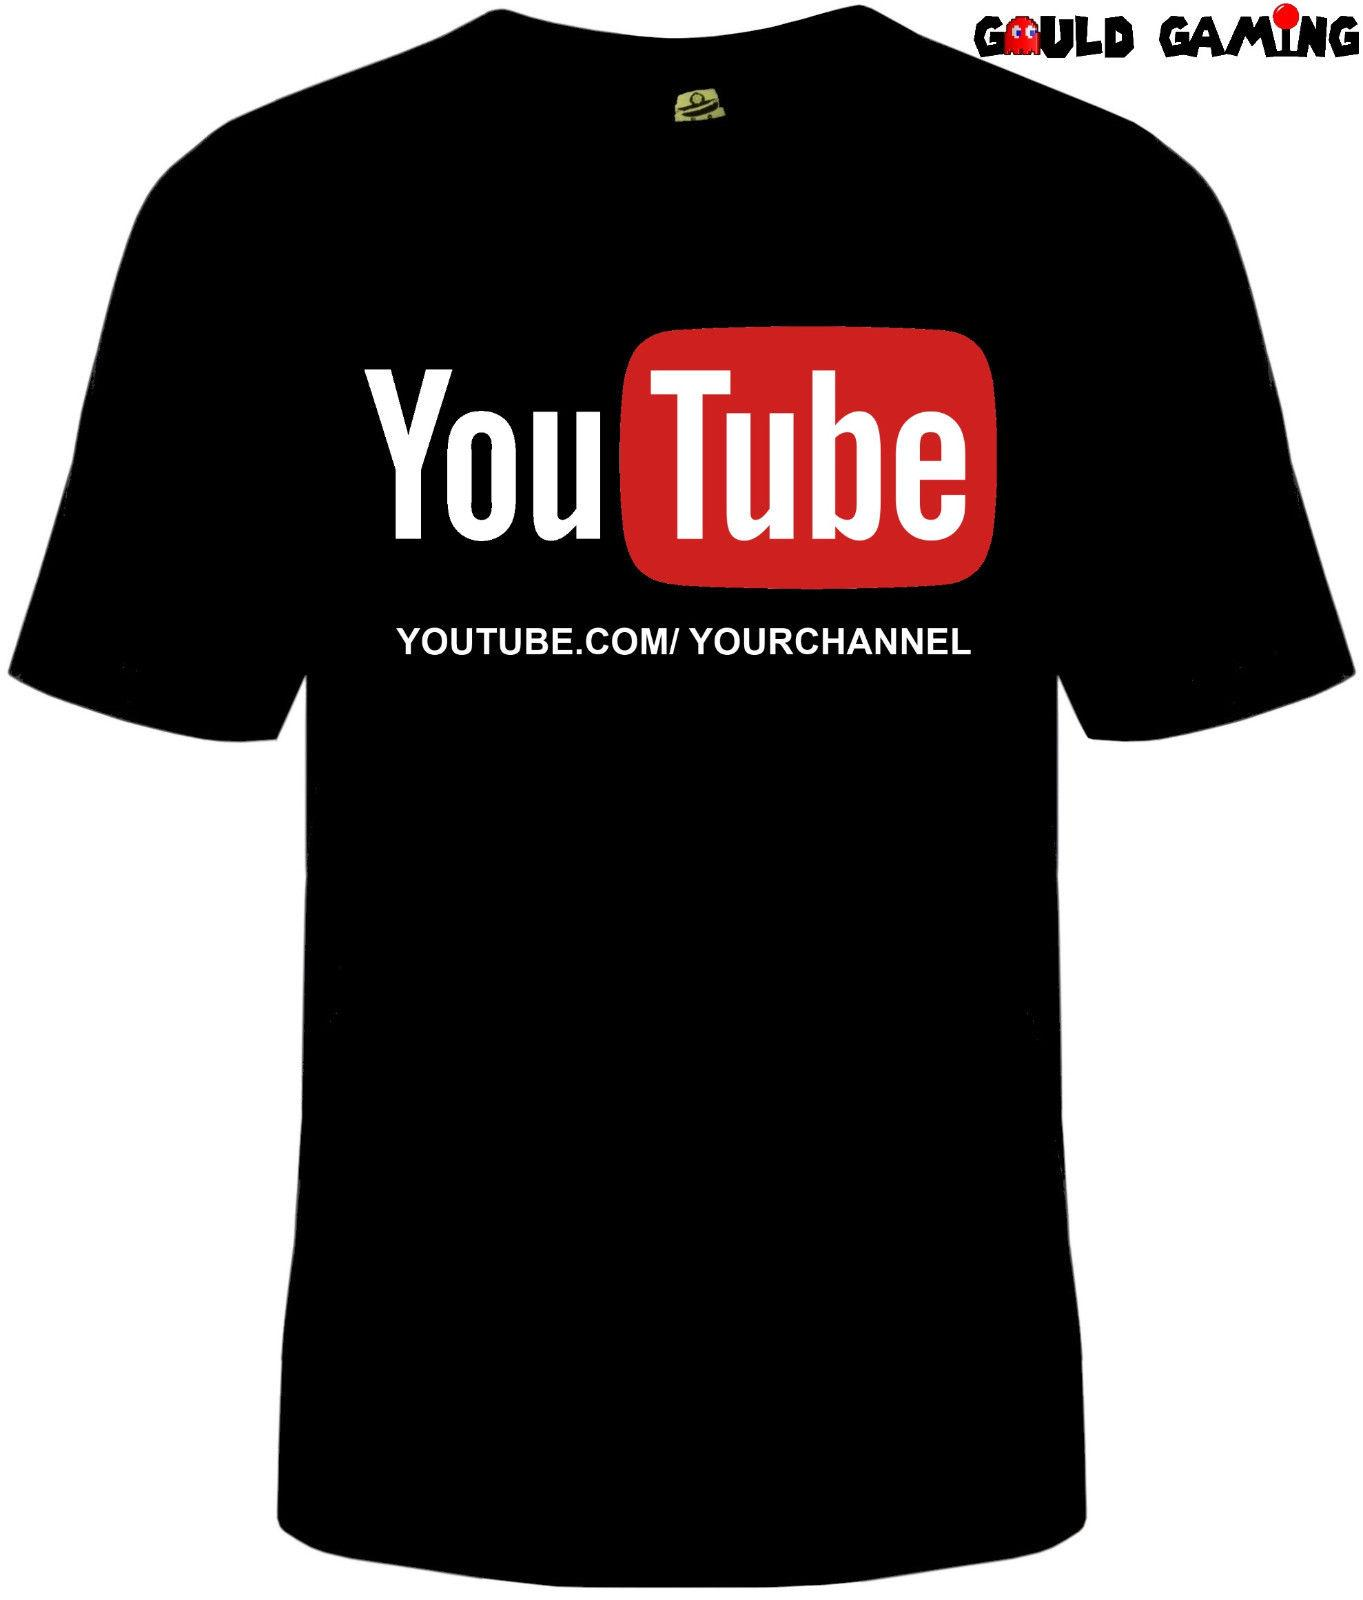 716176b0393 Customized YouTube Channel URL T Shirt Unisex Adult Funny Sizes Personalized  New It Tee Shirts As T Shirt From Banwanyue9